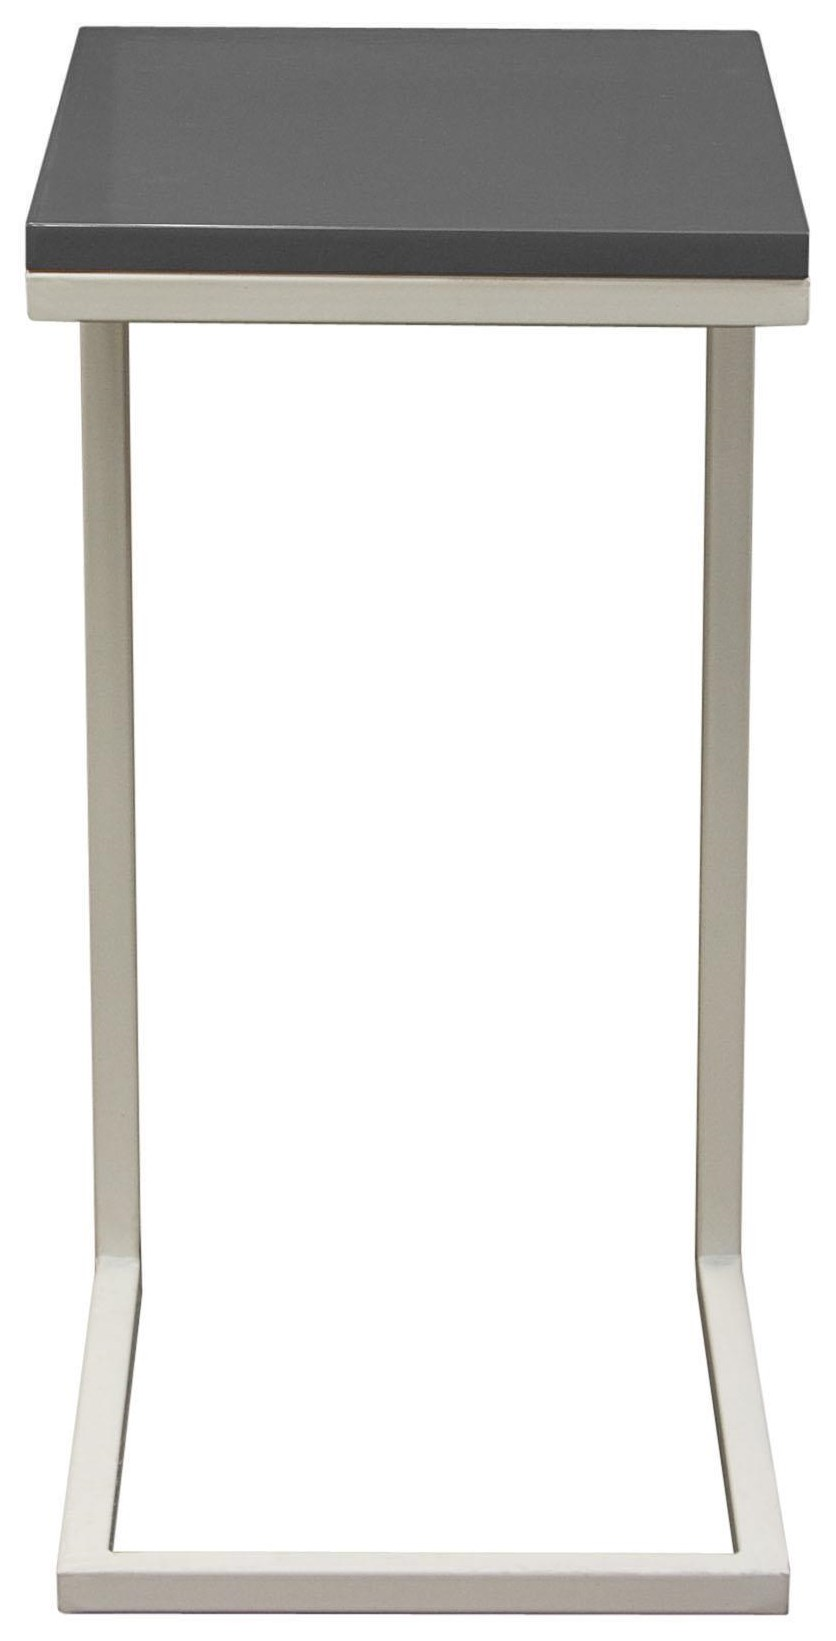 Edge Accent Table